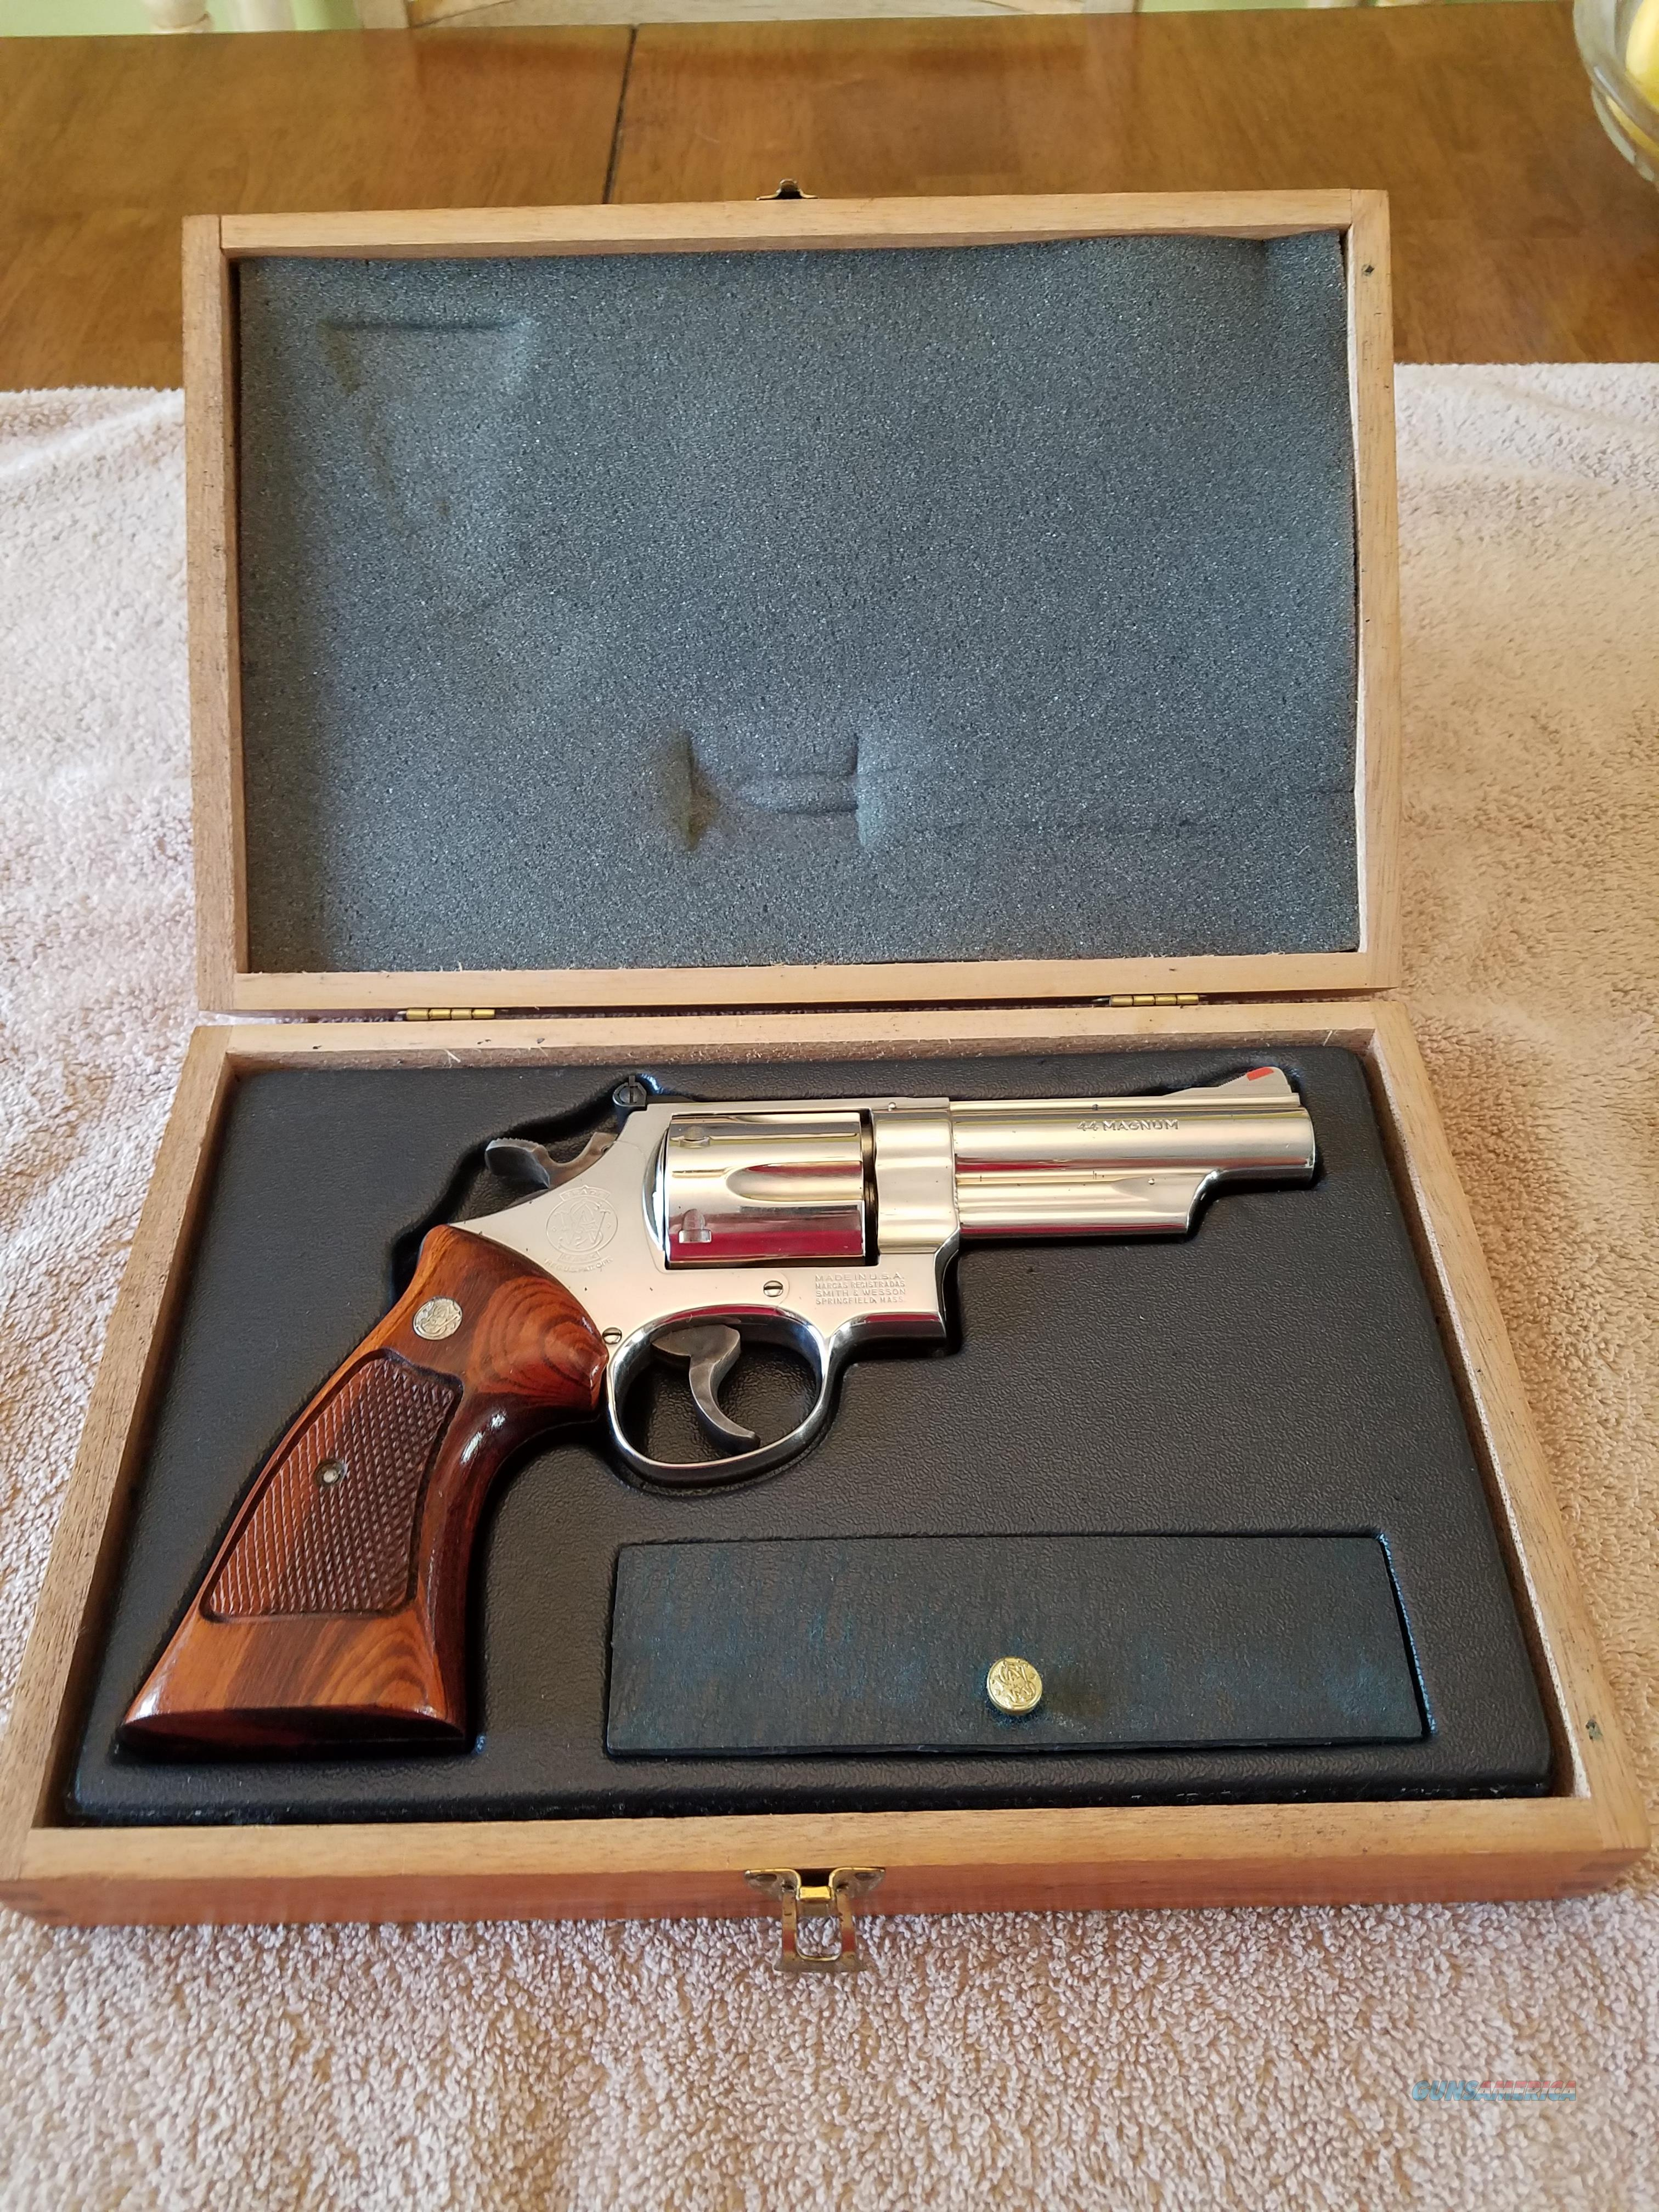 Smith & Wesson 29-2  44 magnum N suffix  Guns > Pistols > Smith & Wesson Revolvers > Full Frame Revolver